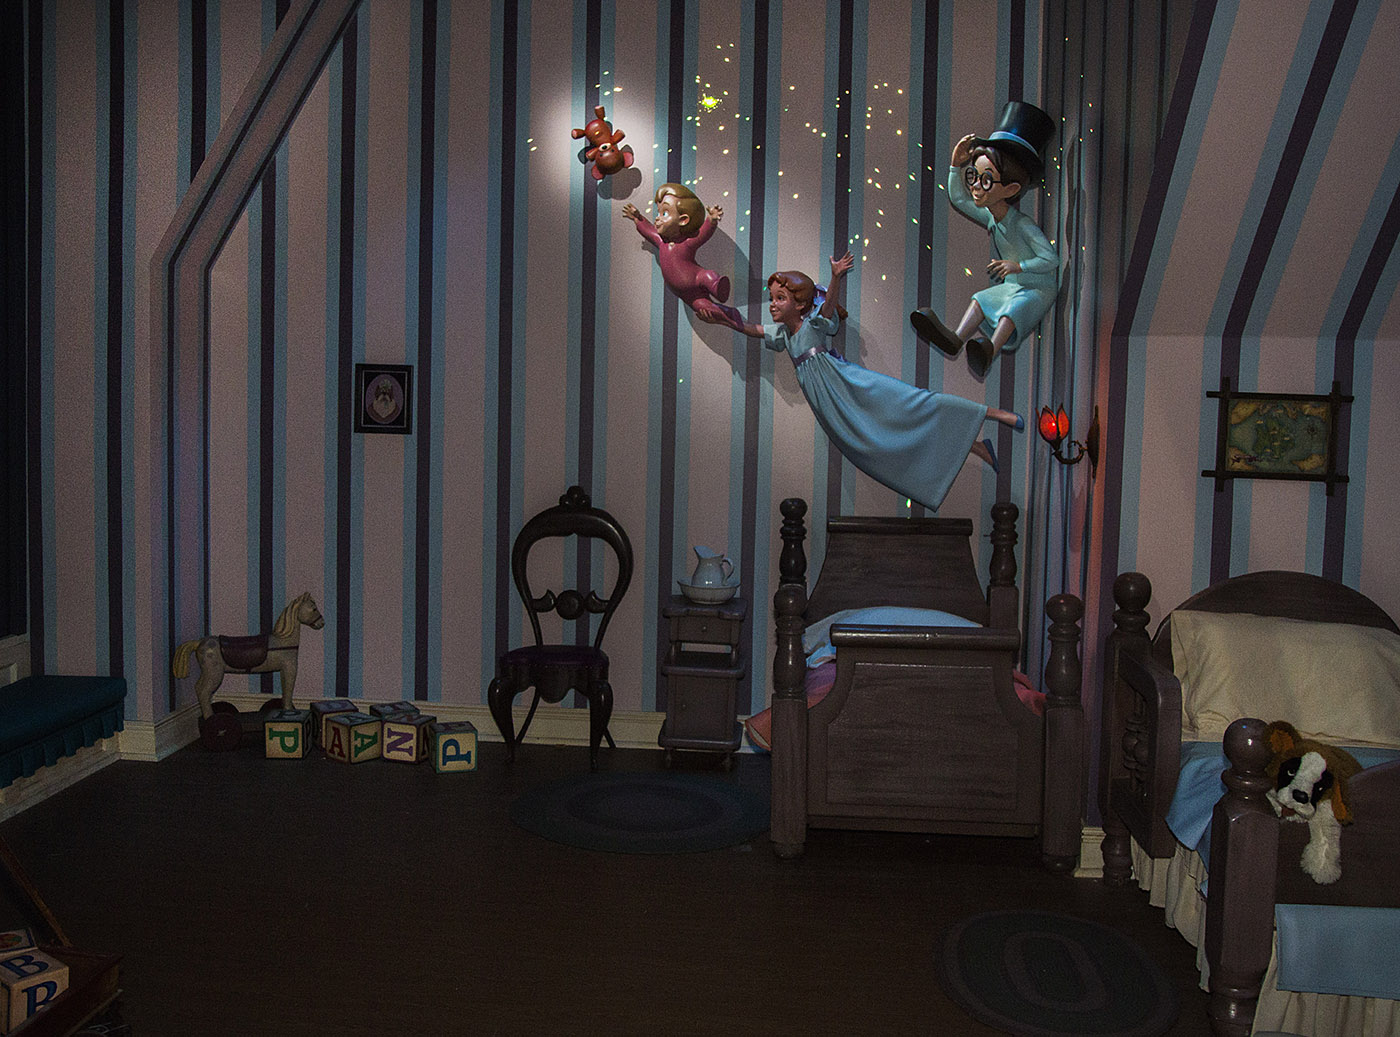 PETER PAN'S FLIGHT PIXIE DUSTED WITH 'NEW MAGIC' (ANAHEIM, Calif.) – Featuring a variety of special effects and a reimagined nursery scene, the classic attraction continues to delight guests on a flight to Never Land. (Paul Hiffmeyer/Disneyland Resort)